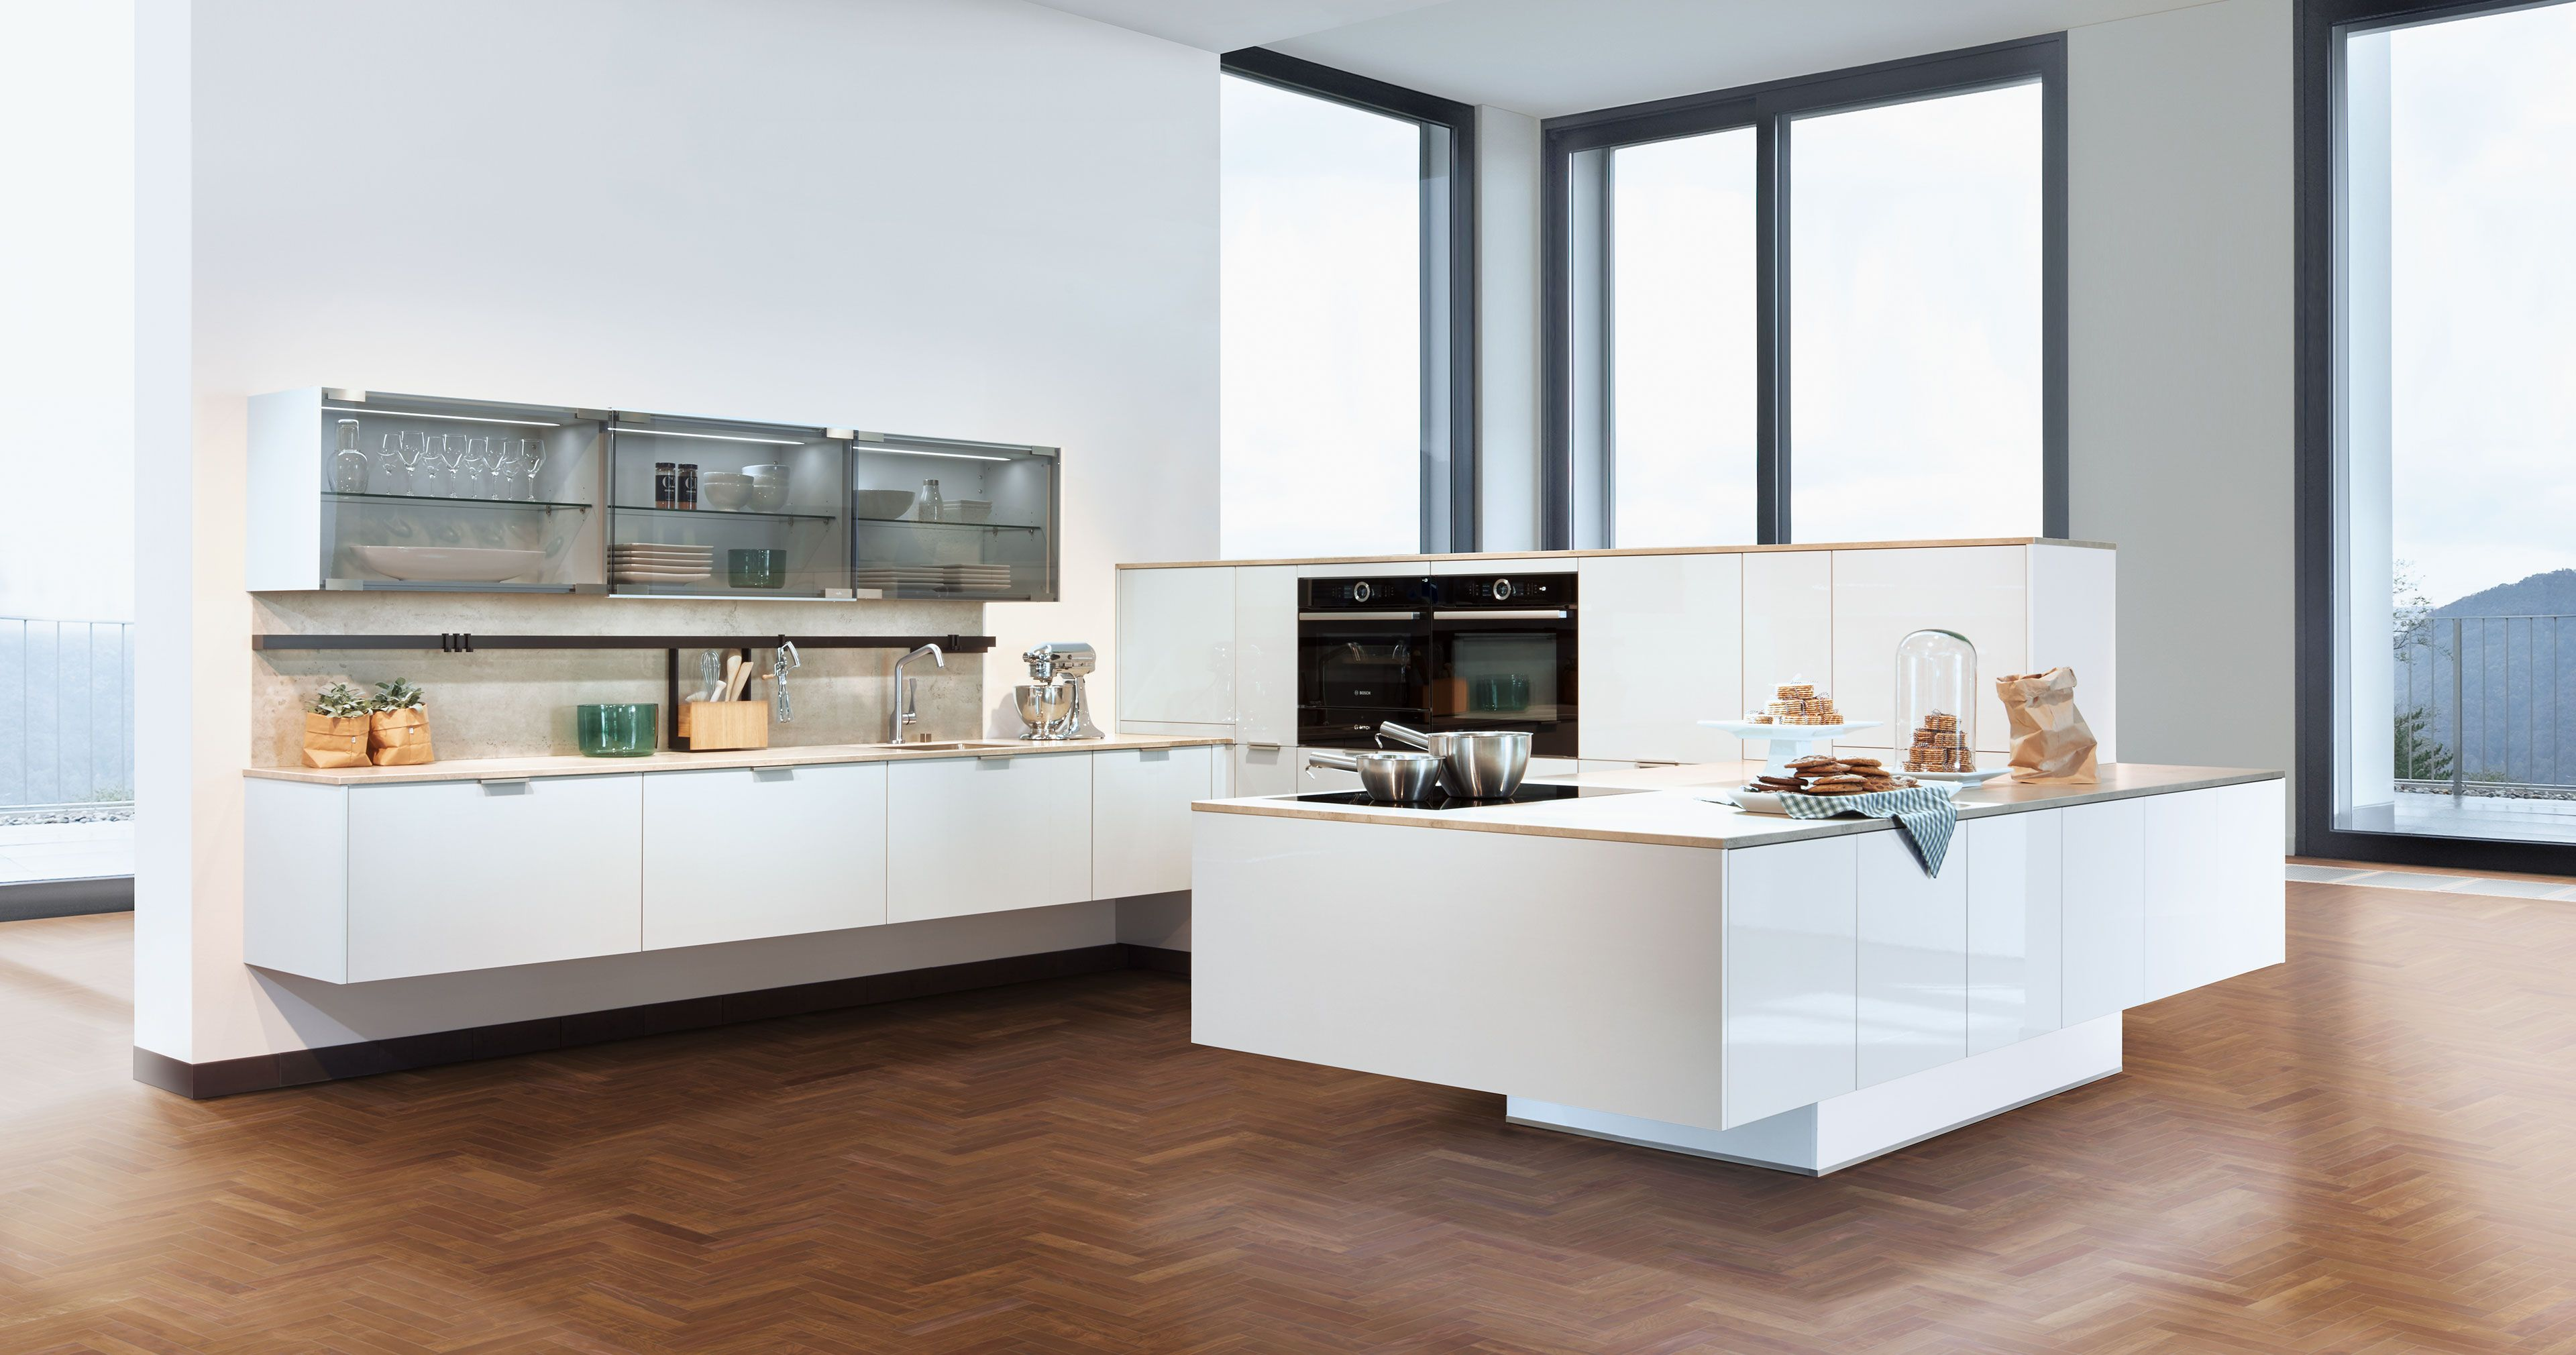 Zeyko Küche Landhausstil From Our Affordable Kitchen Line Good Taste Is Not A